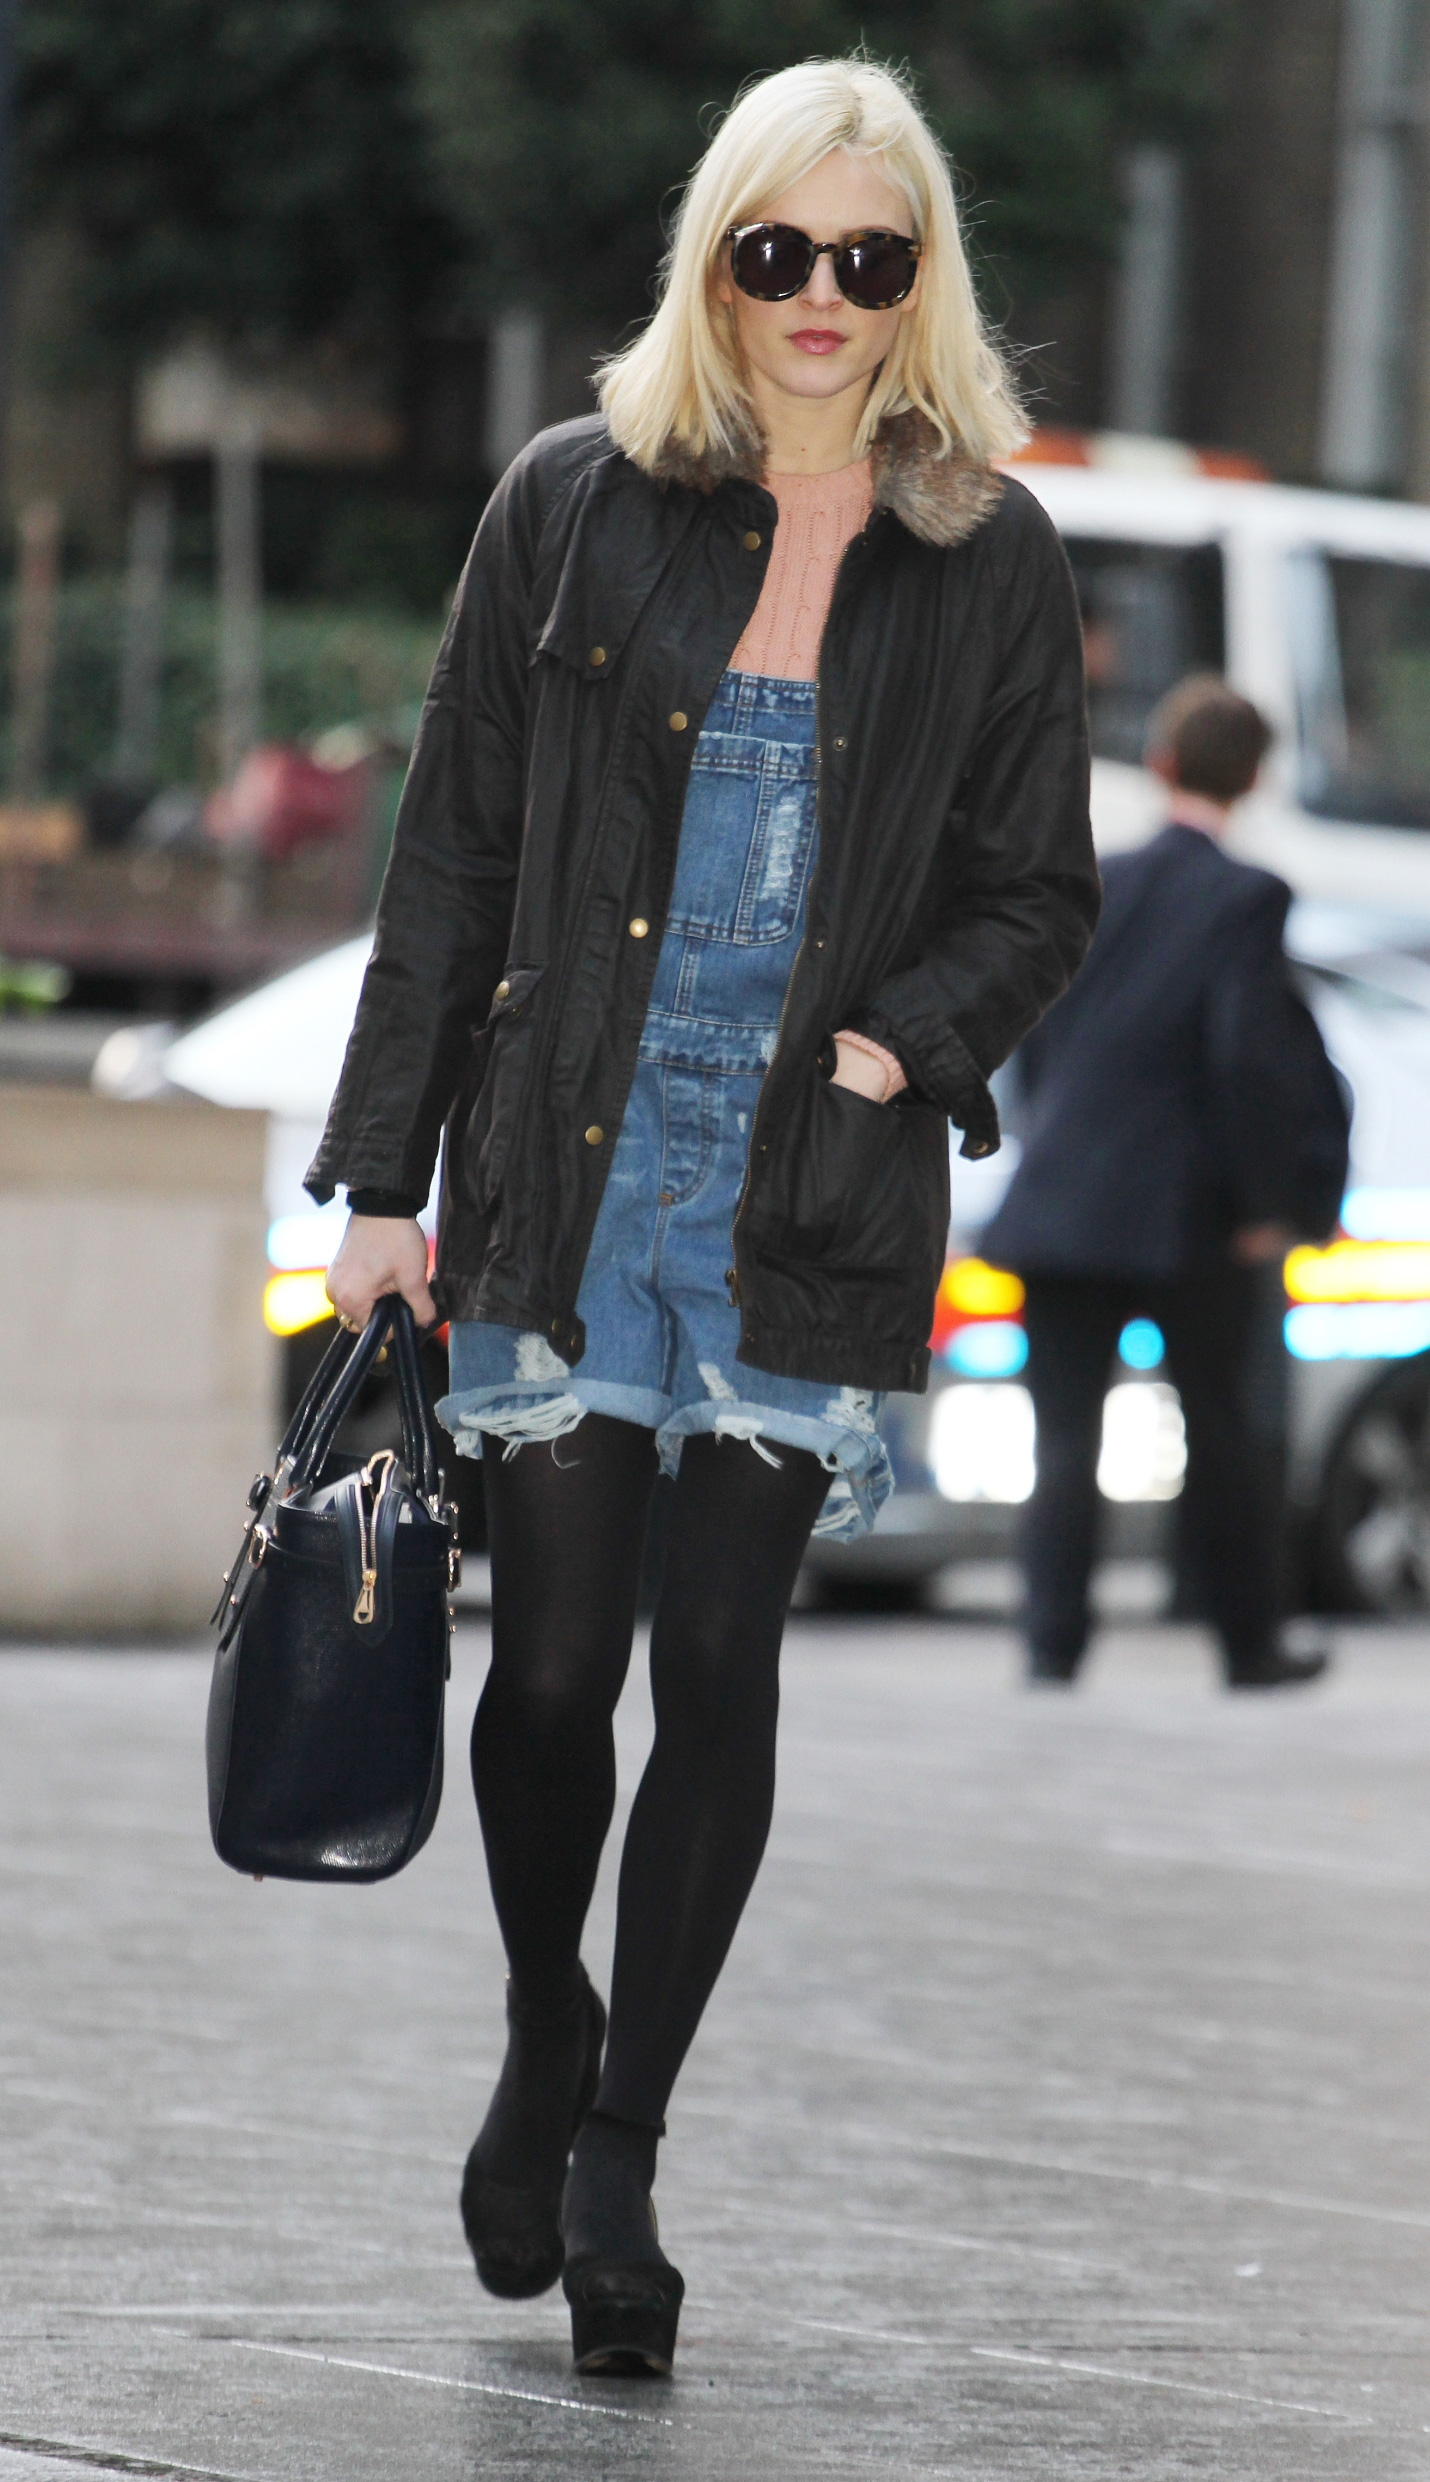 Fearne Cotton wearing overalls